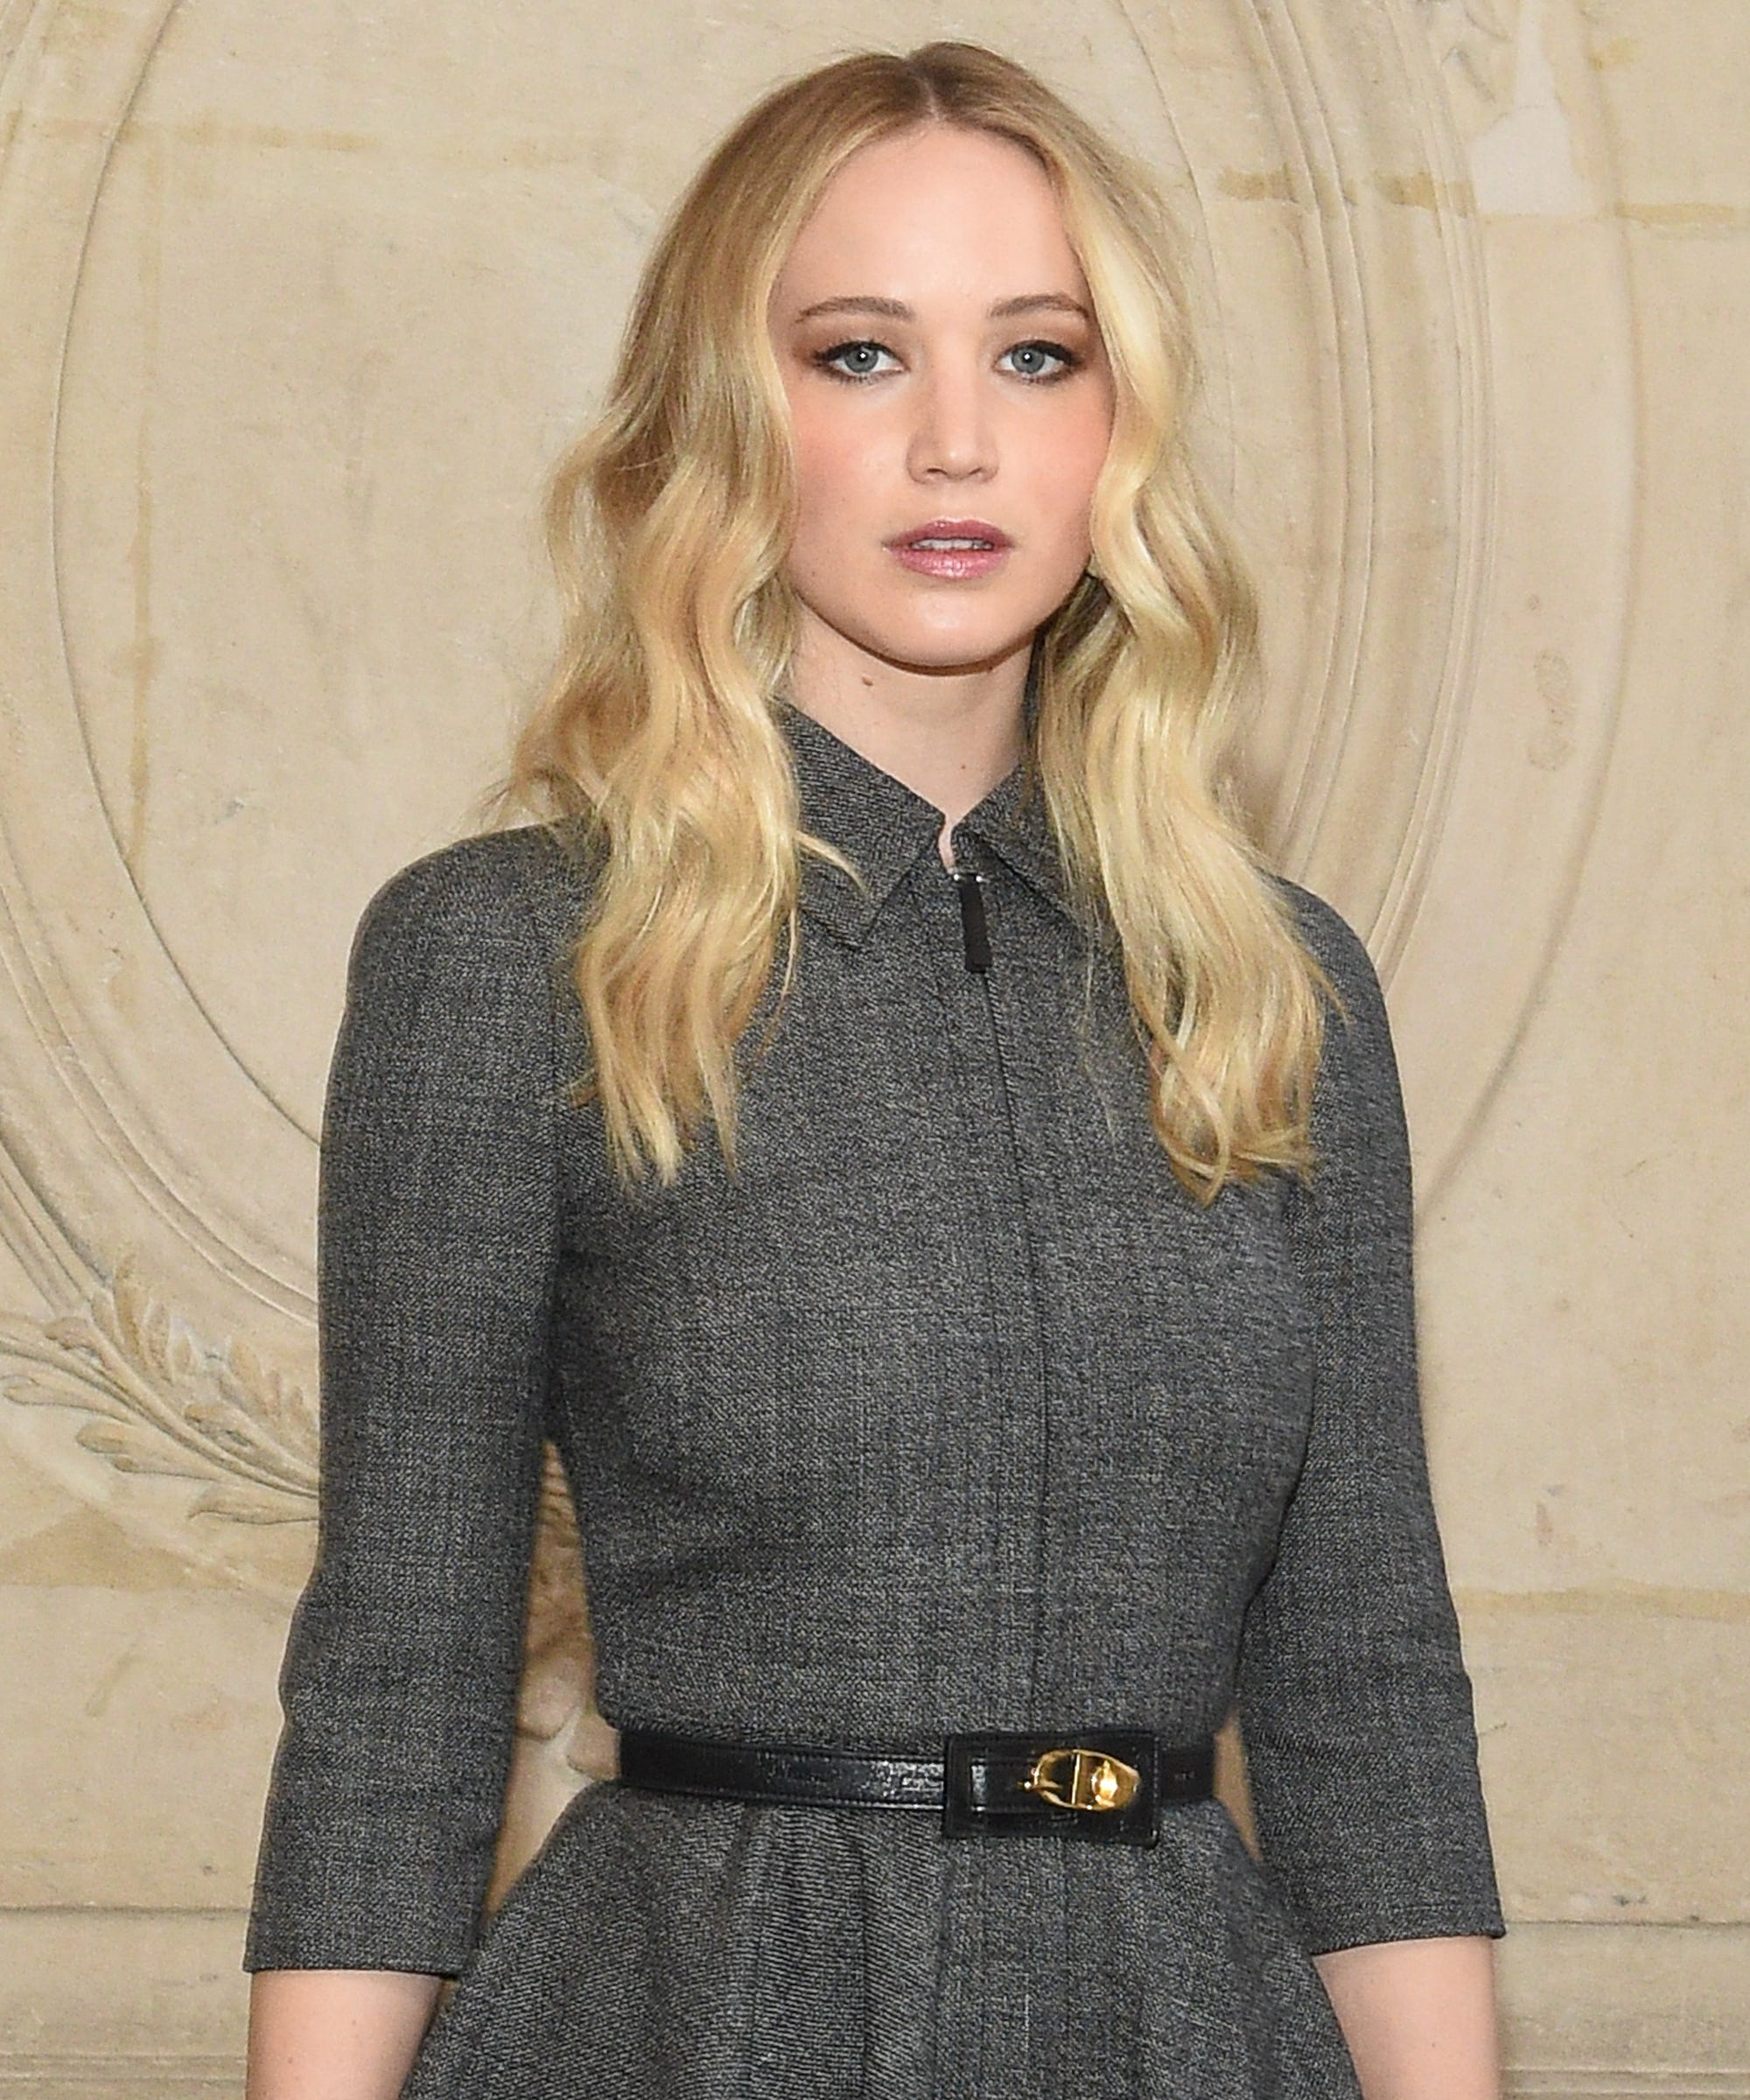 Jennifer Lawrence Is Back From Her Acting Hiatus With The Perfect Project